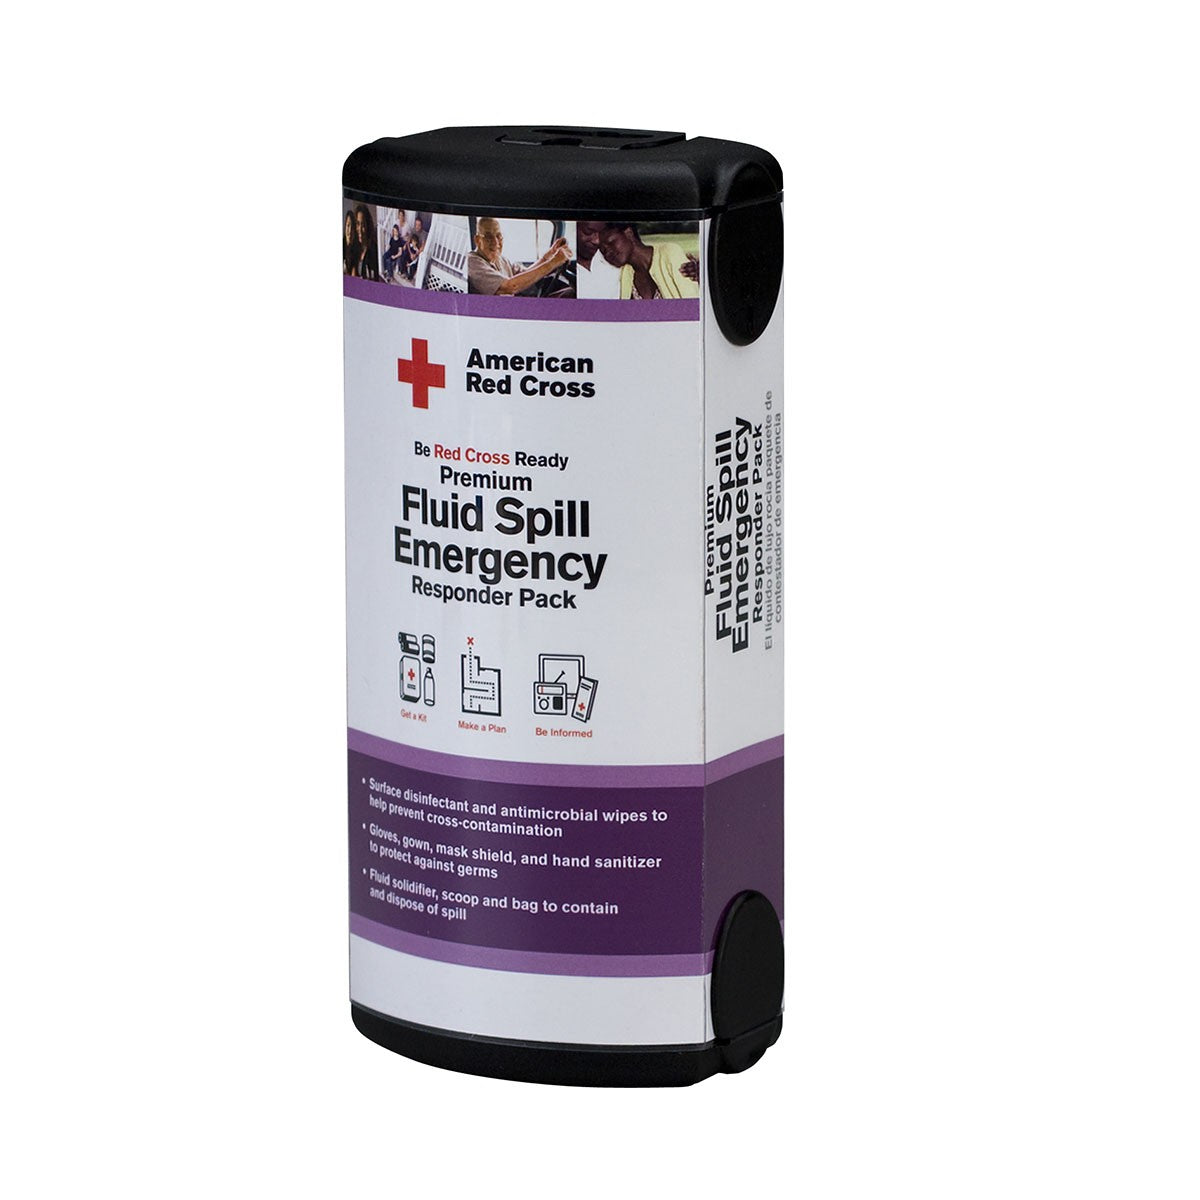 American Red Cross 13 Piece Fluid Spill Emergency Responder Pack - BS-FAK-RC-657-1-FM